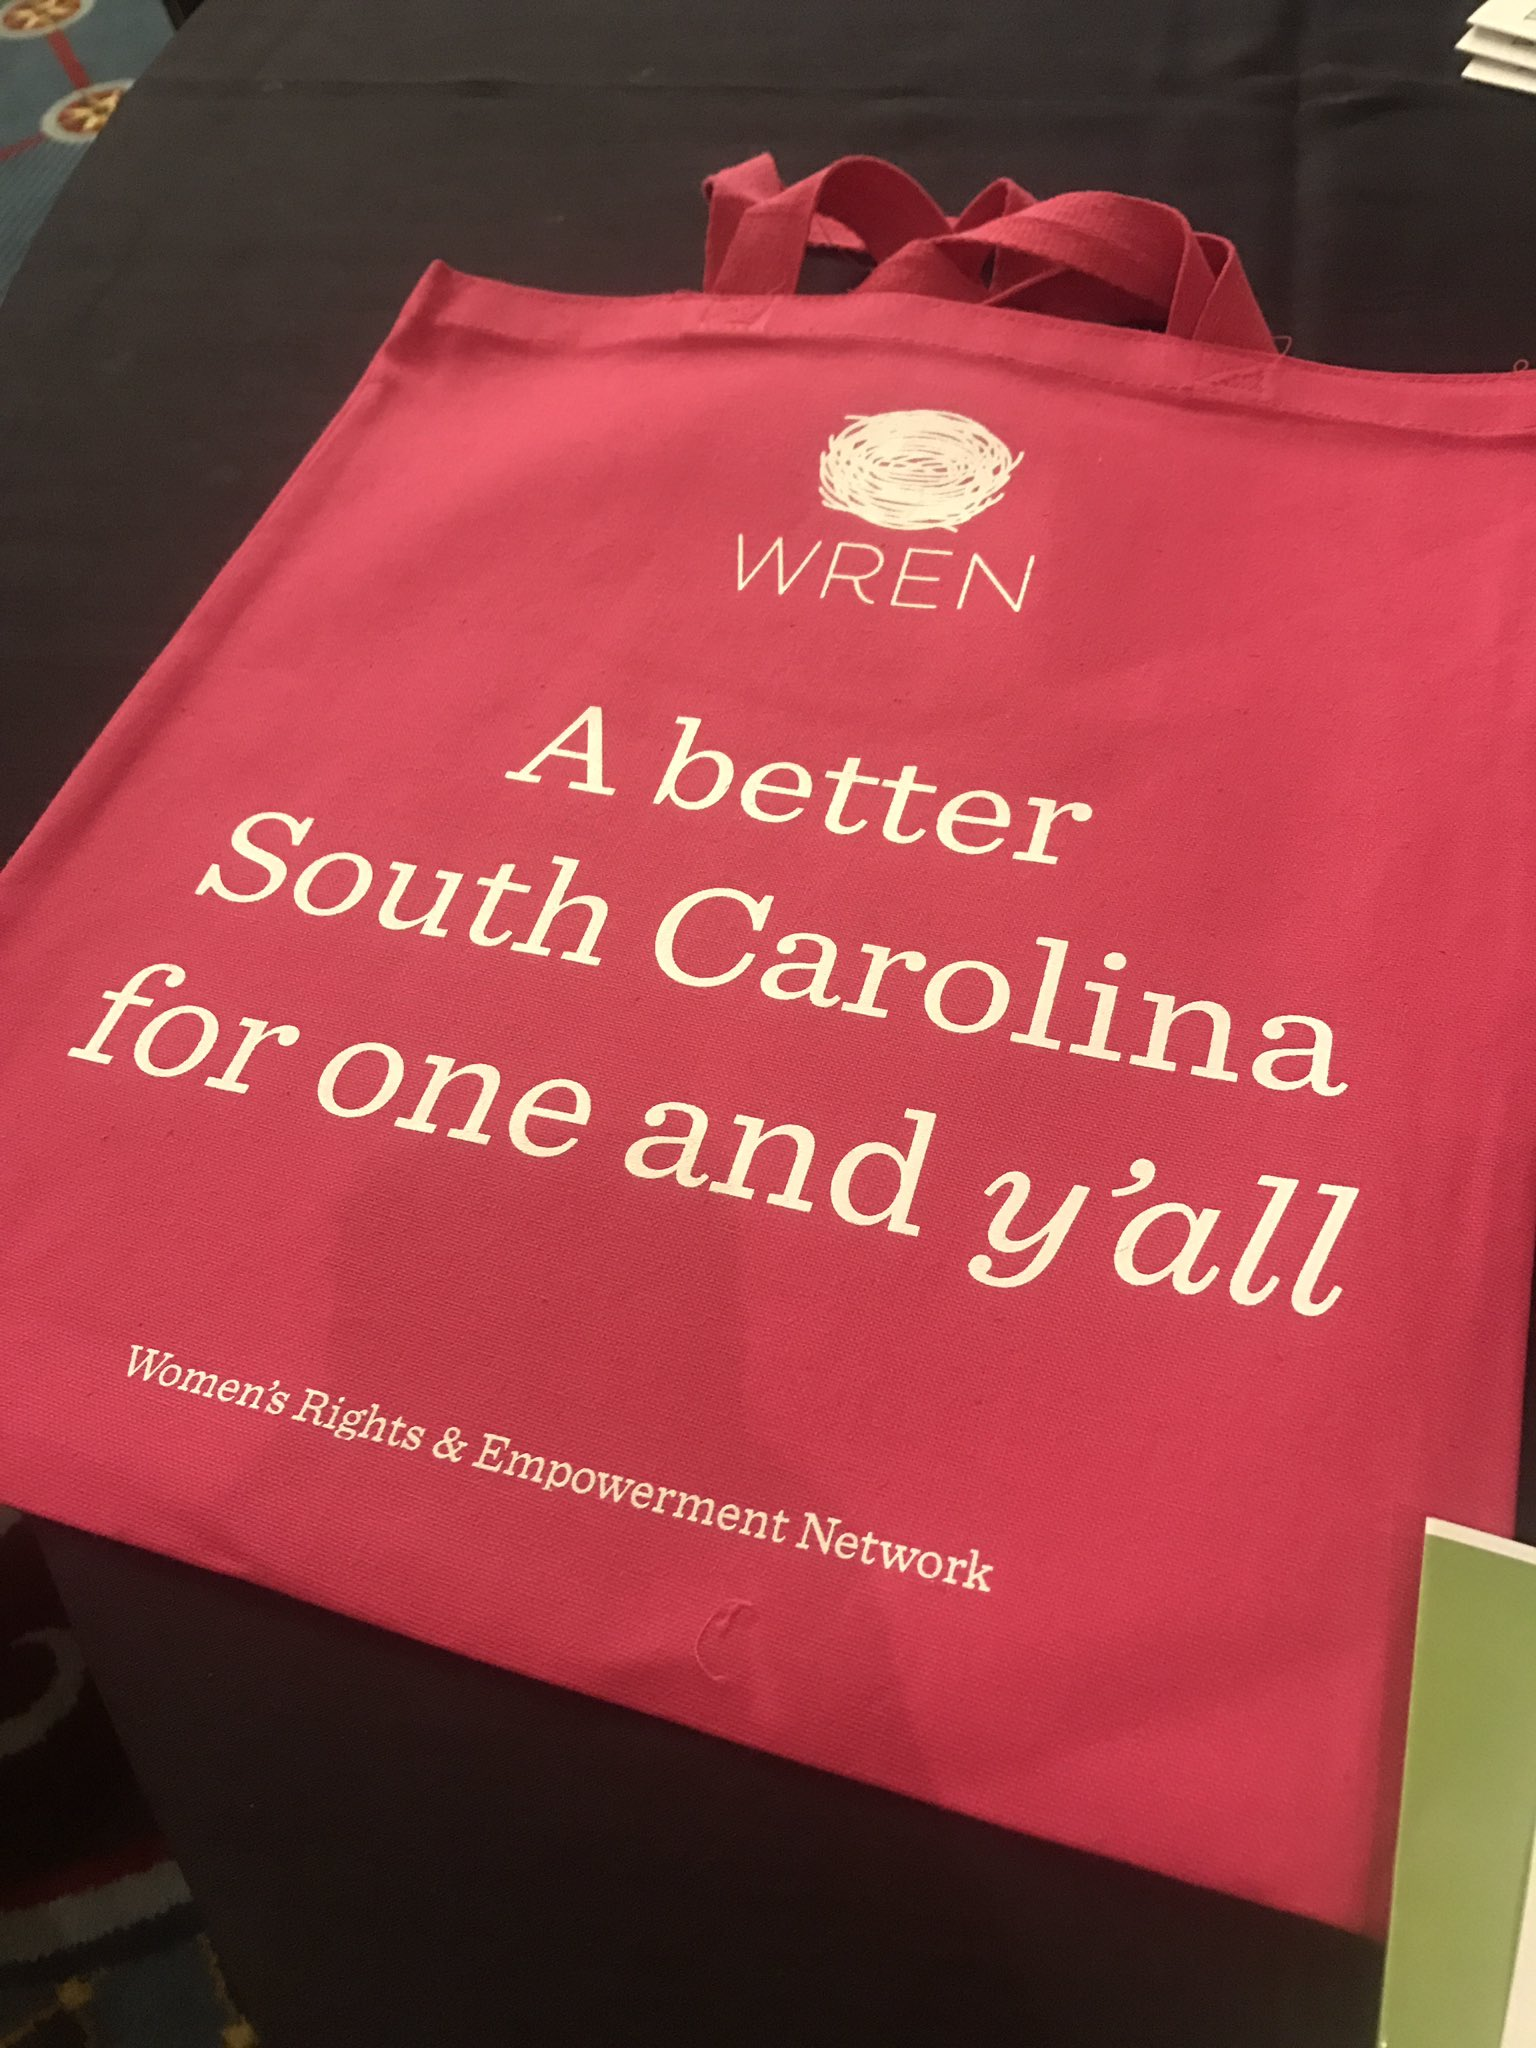 Kicking off the #wrensummit with several women from @WIPMidlands and @accessfreely at my table. Let's equip the women in SC's workforce! https://t.co/SaWCopD5S6